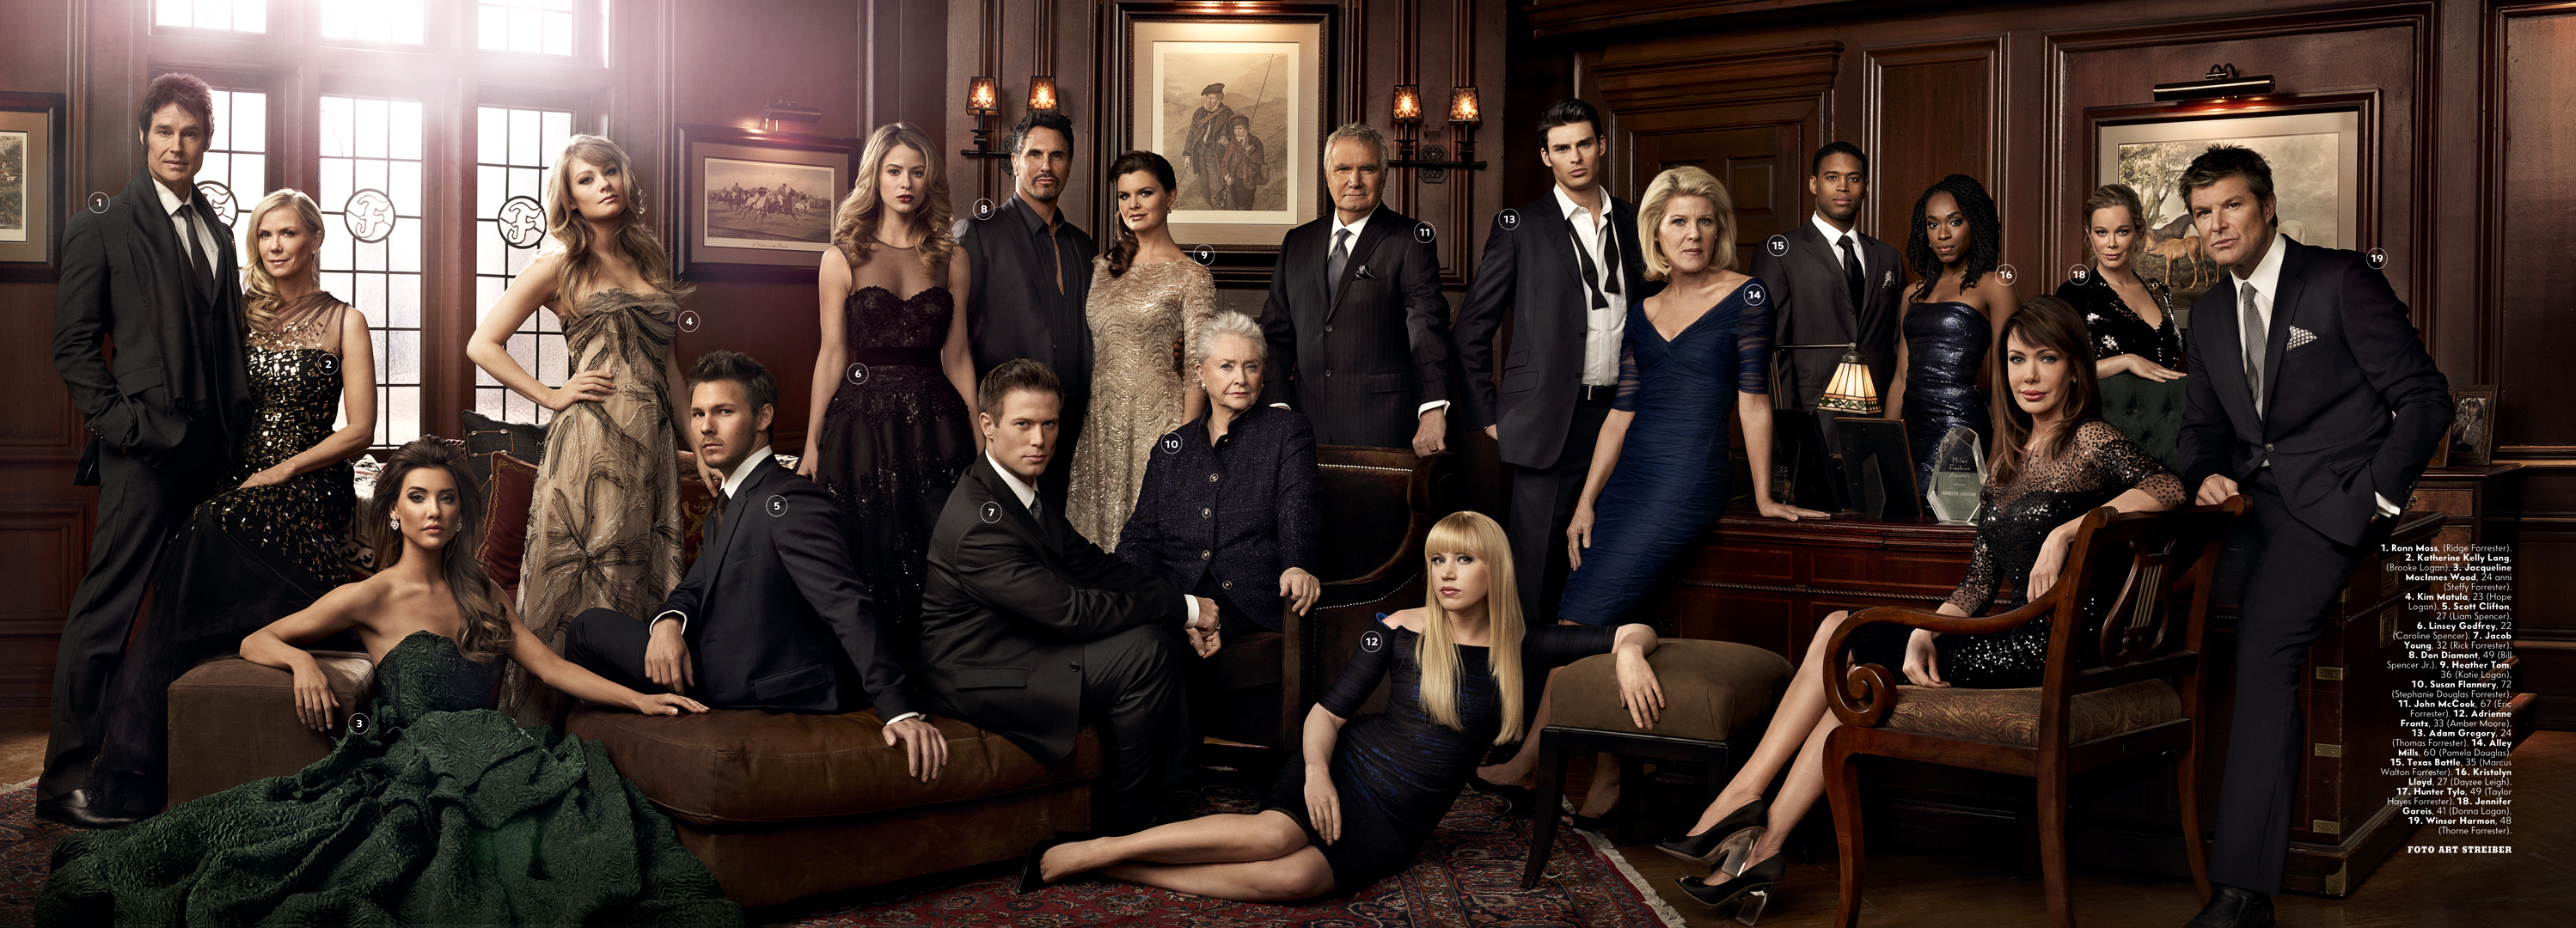 The cast of the bold amp the beautiful photo by art streiber for